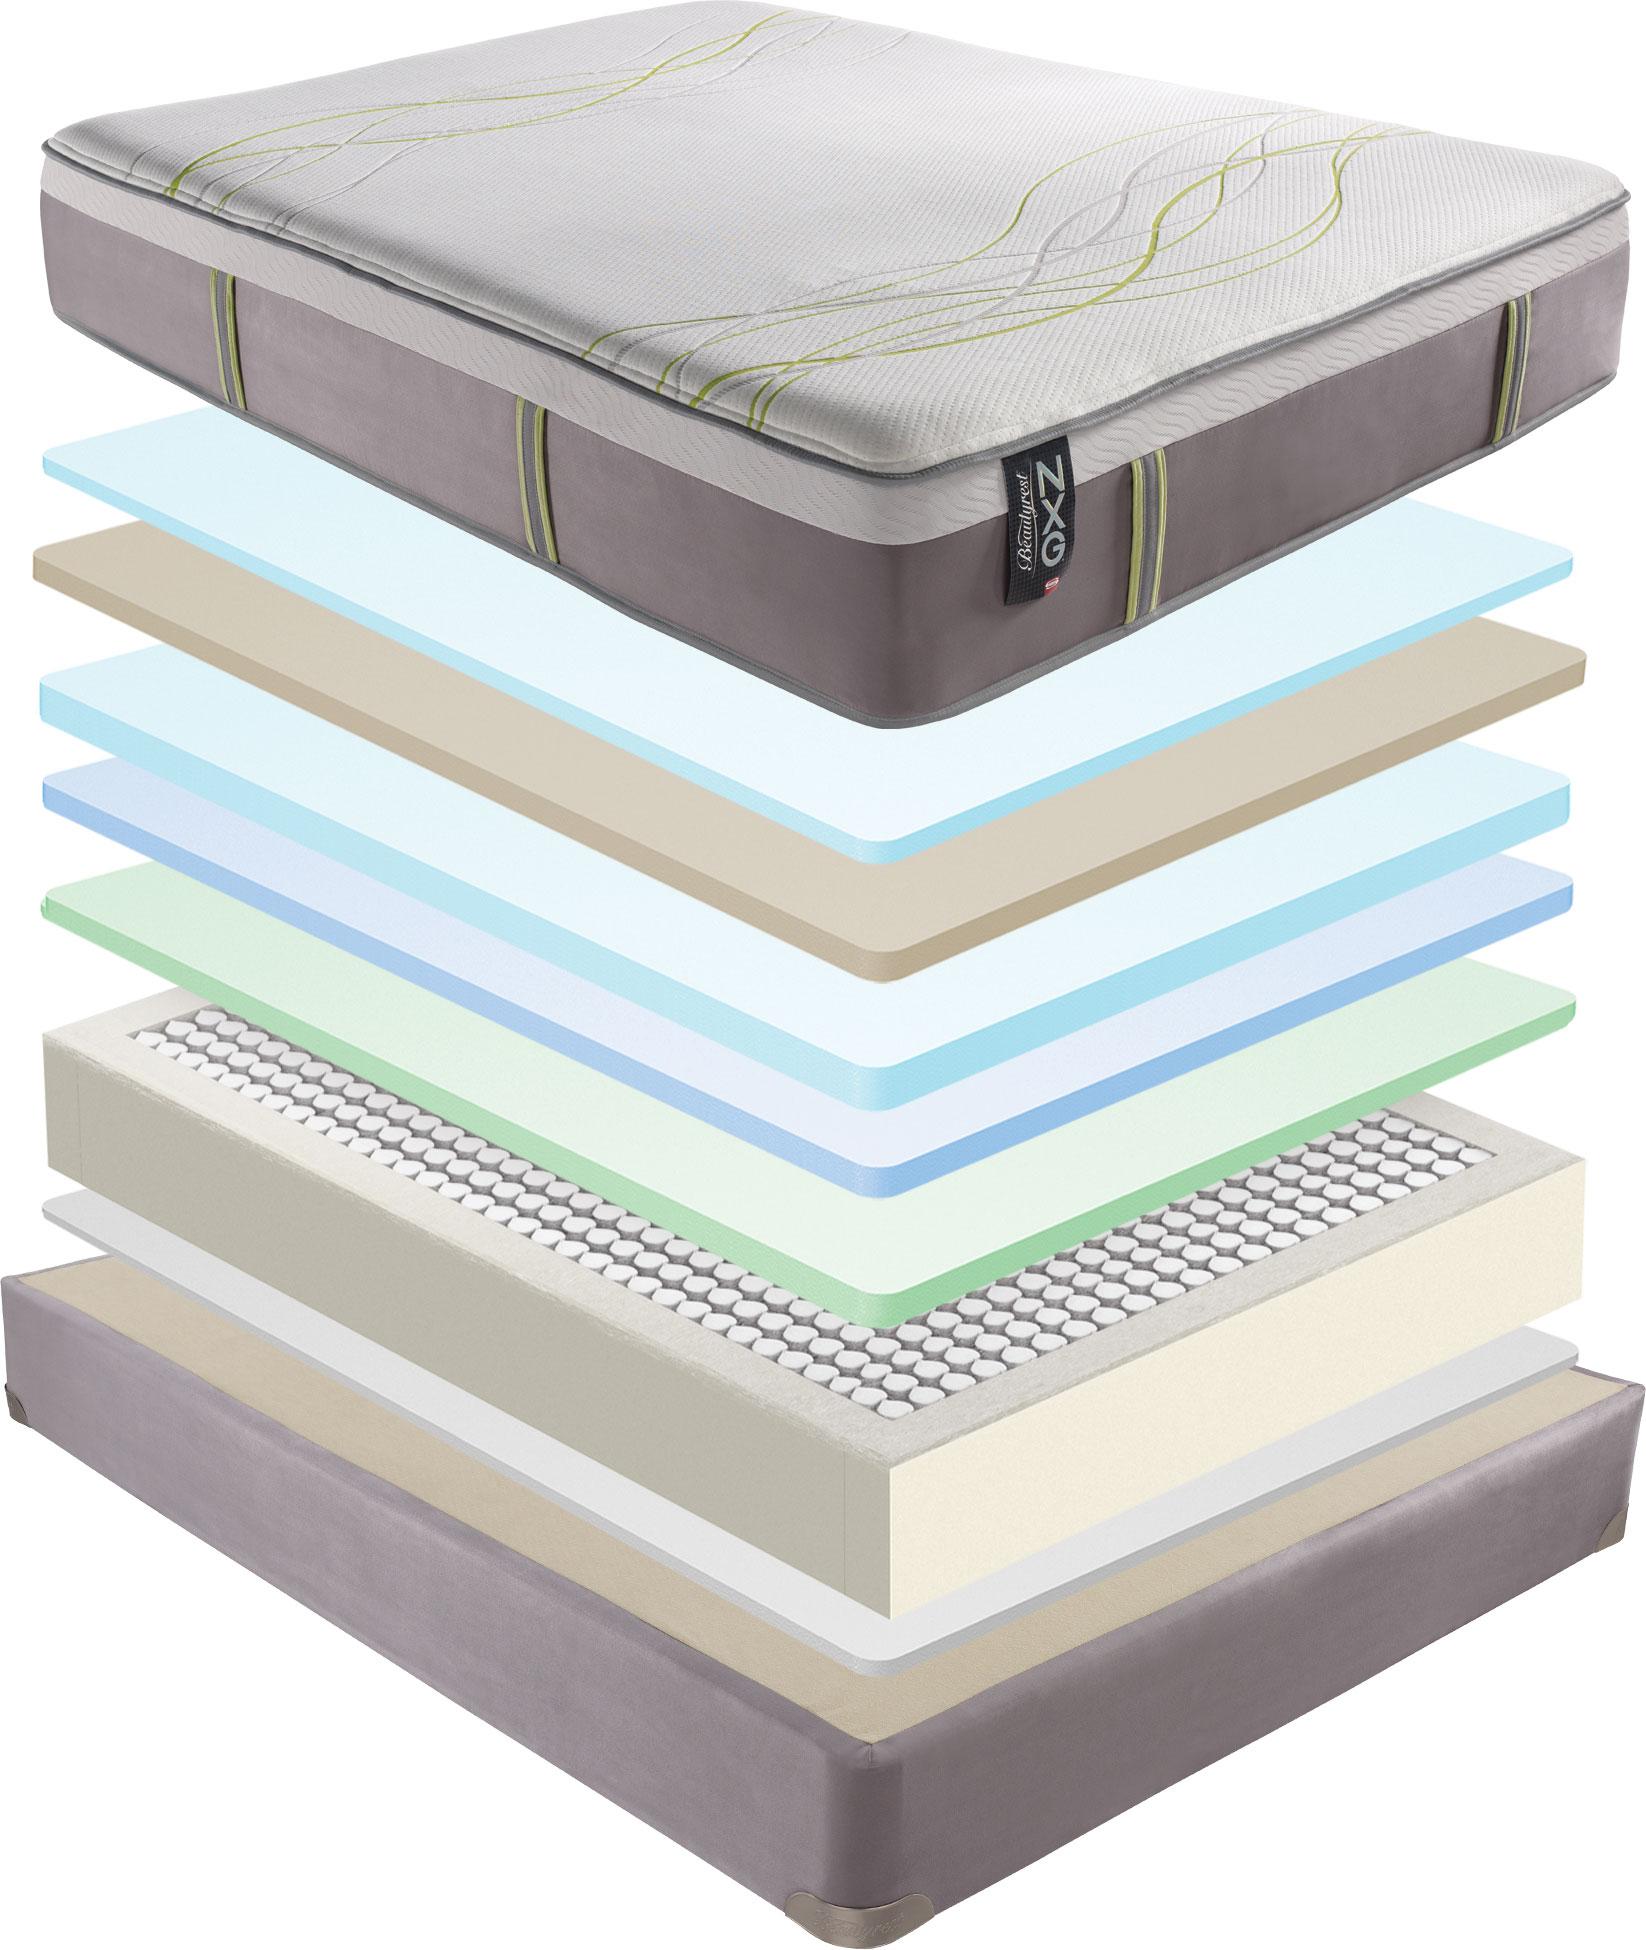 Simmons Beautyrest Nxg 400 Plush Pillow Top Mattress